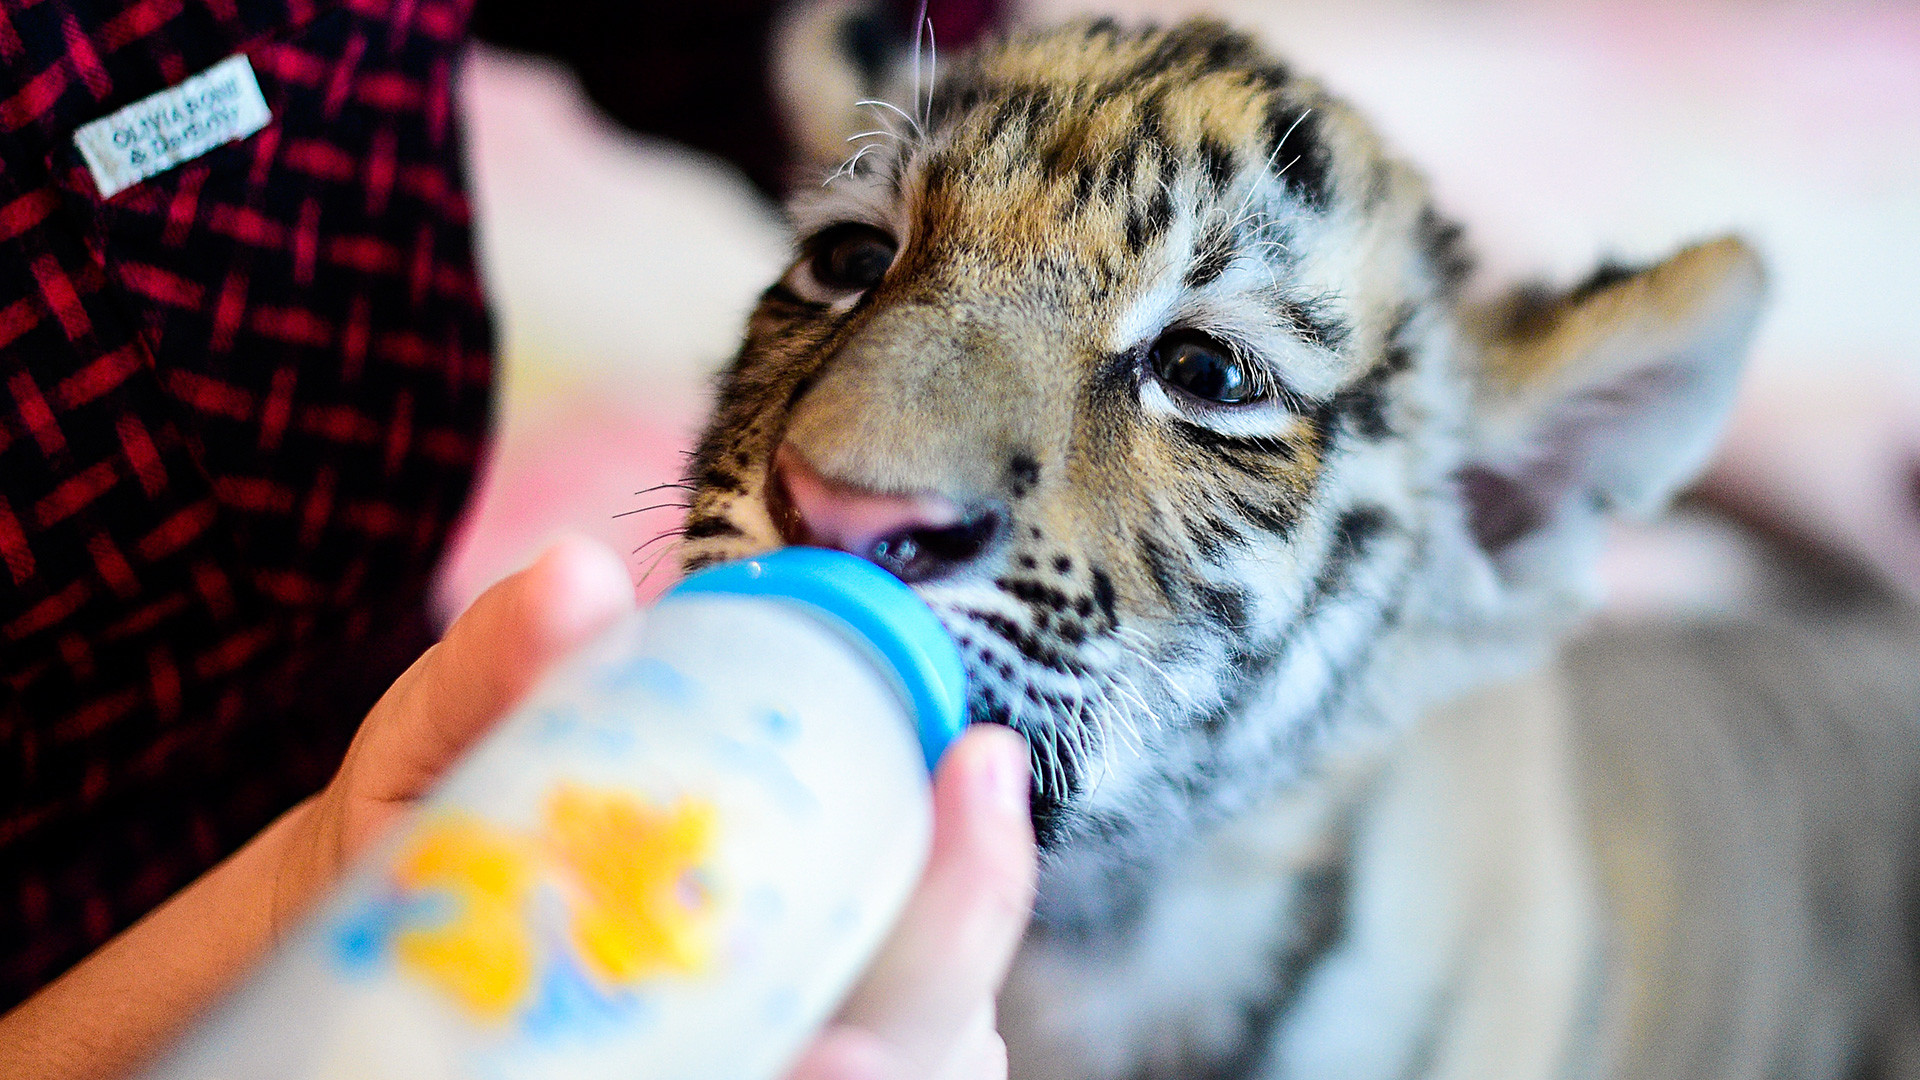 Vet Vasilina Tataurova feeding a two-month old Siberian tiger cub, Sherkhan, in her house in the village of Shkotovo. The cub was born in September 2016 to Siberian tigers Amur and Ussuri in the Primorye Safari Park.